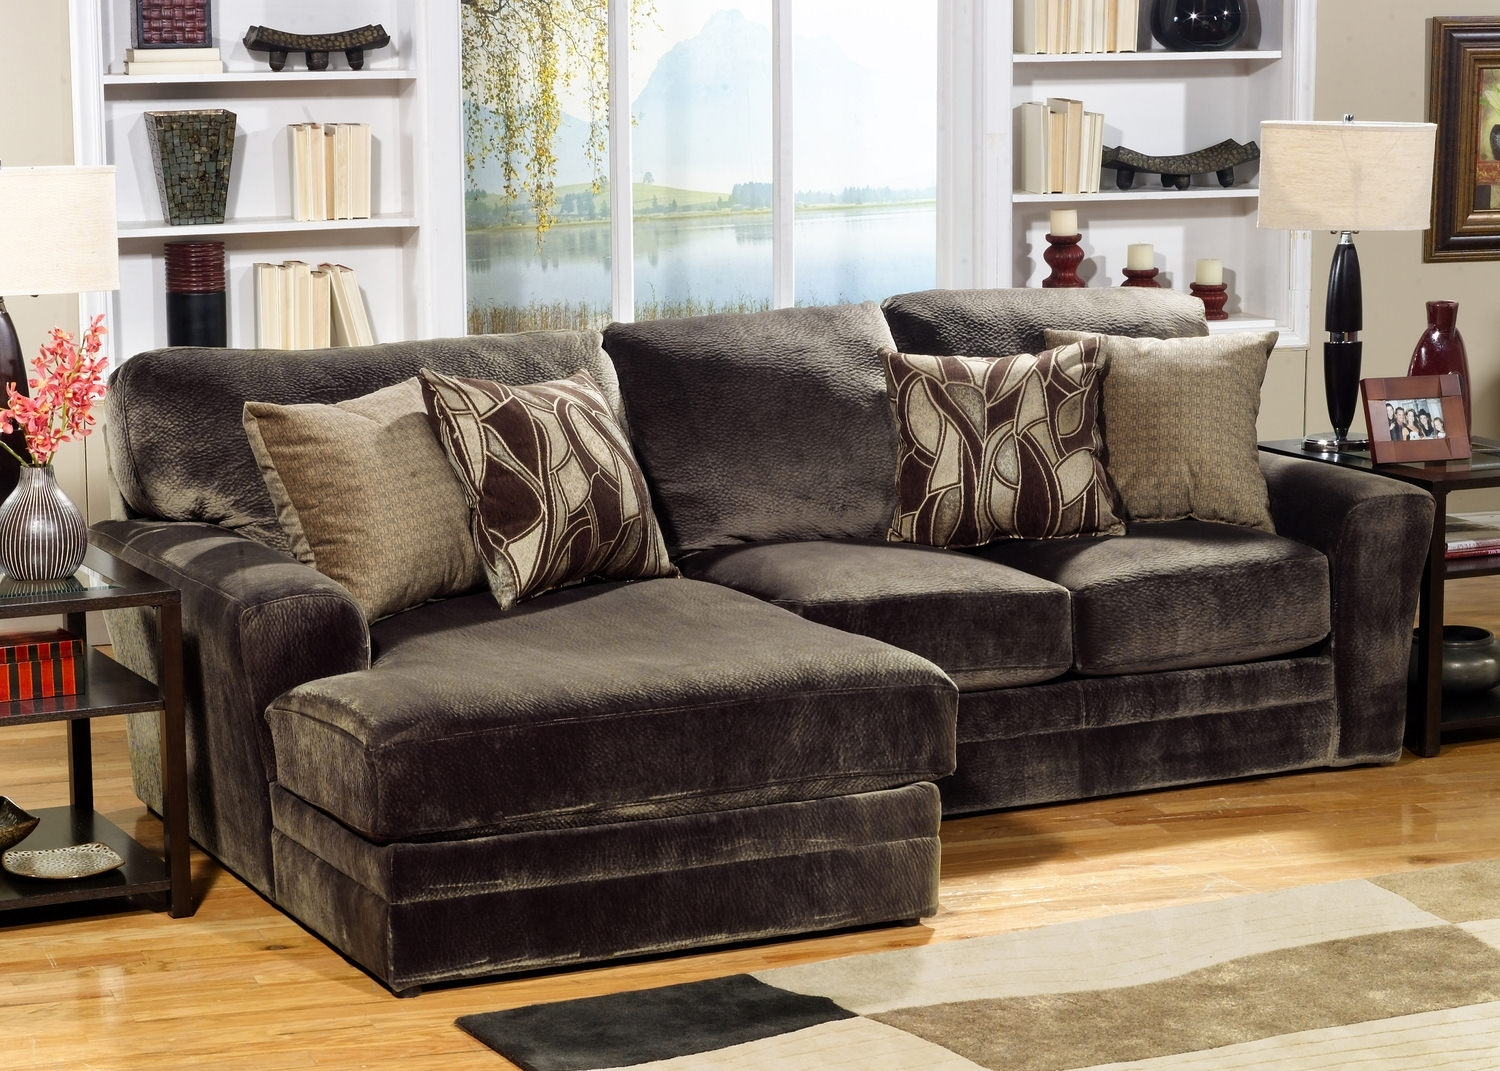 Rainier 2 Piece Modular Sectional | Hom Furniture Pertaining To St Cloud Mn Sectional Sofas (Image 4 of 10)